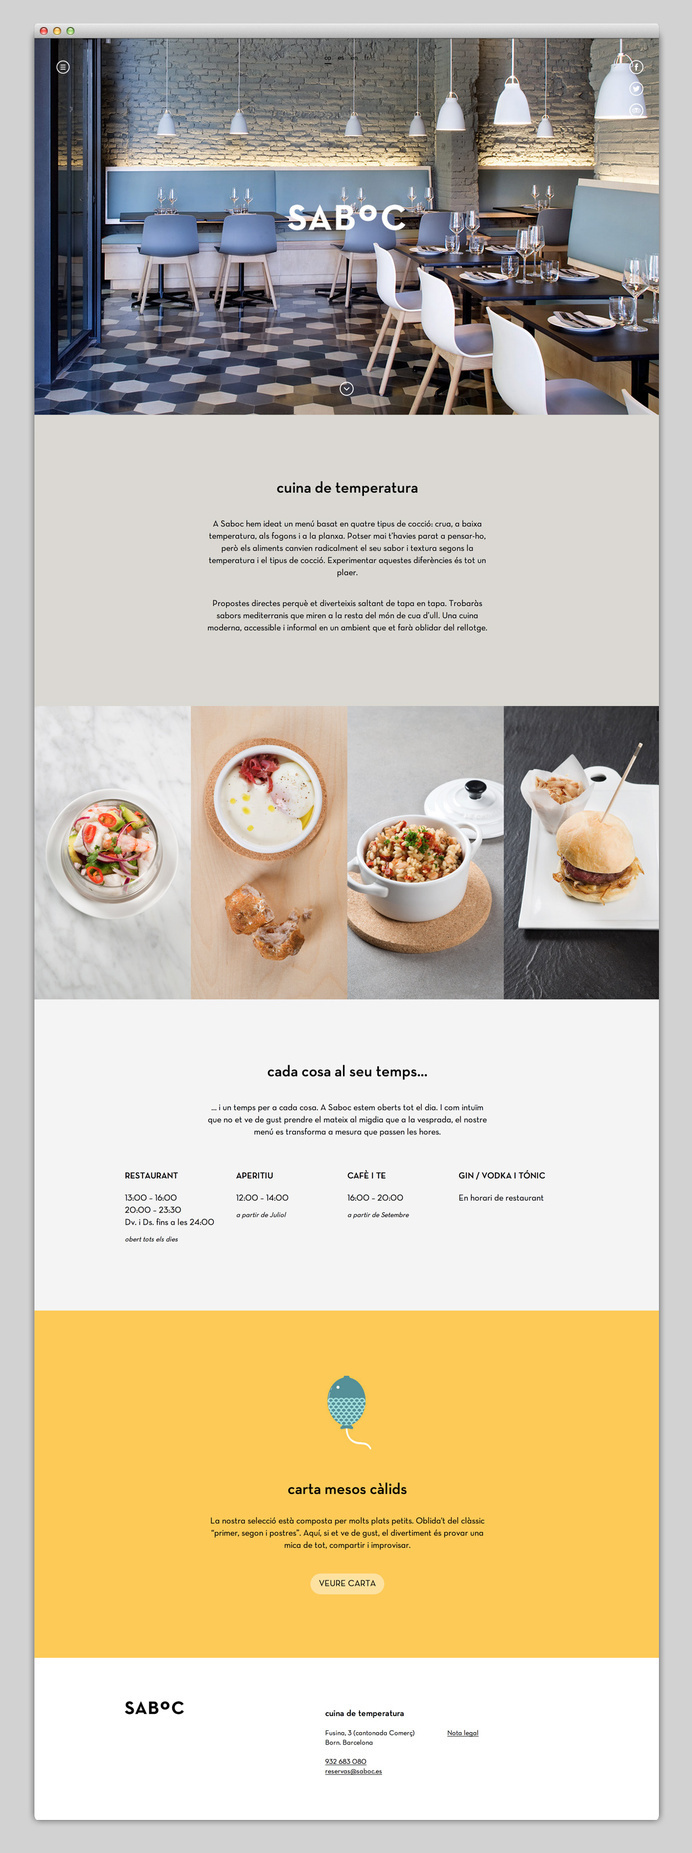 Websites We Love — Showcasing The Best in Web Design #agency #portfolio #design #eat #food #best #website #ui #minimal #webdesign #meal #lunch #web #typography